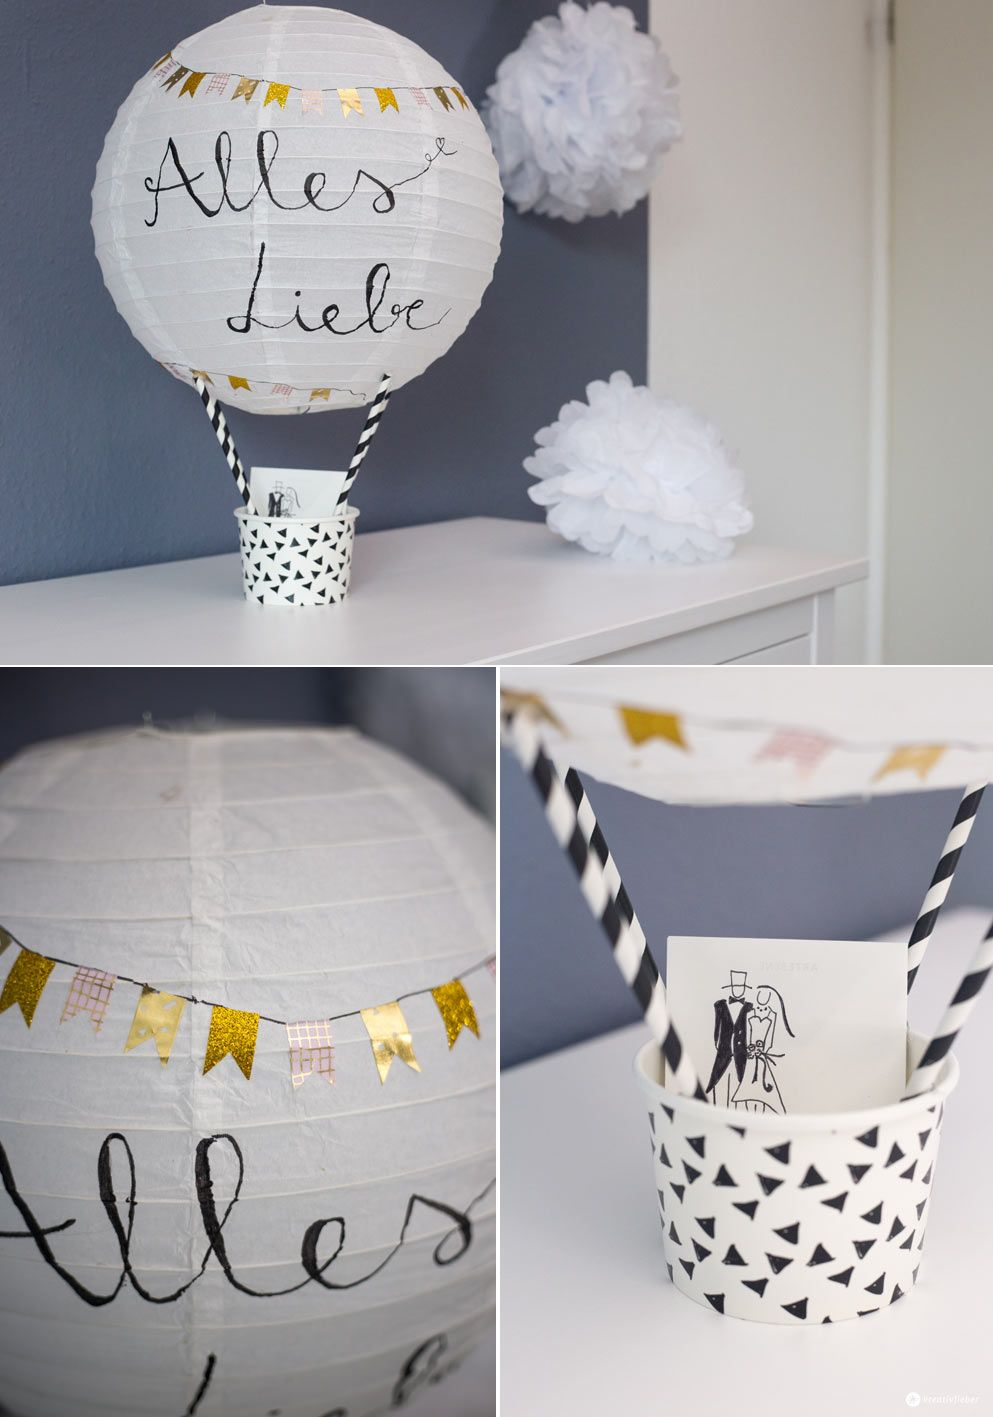 diy geschenkidee zur hochzeit hei luftballon geldgeschenk basteln diy geschenkverpackungen. Black Bedroom Furniture Sets. Home Design Ideas